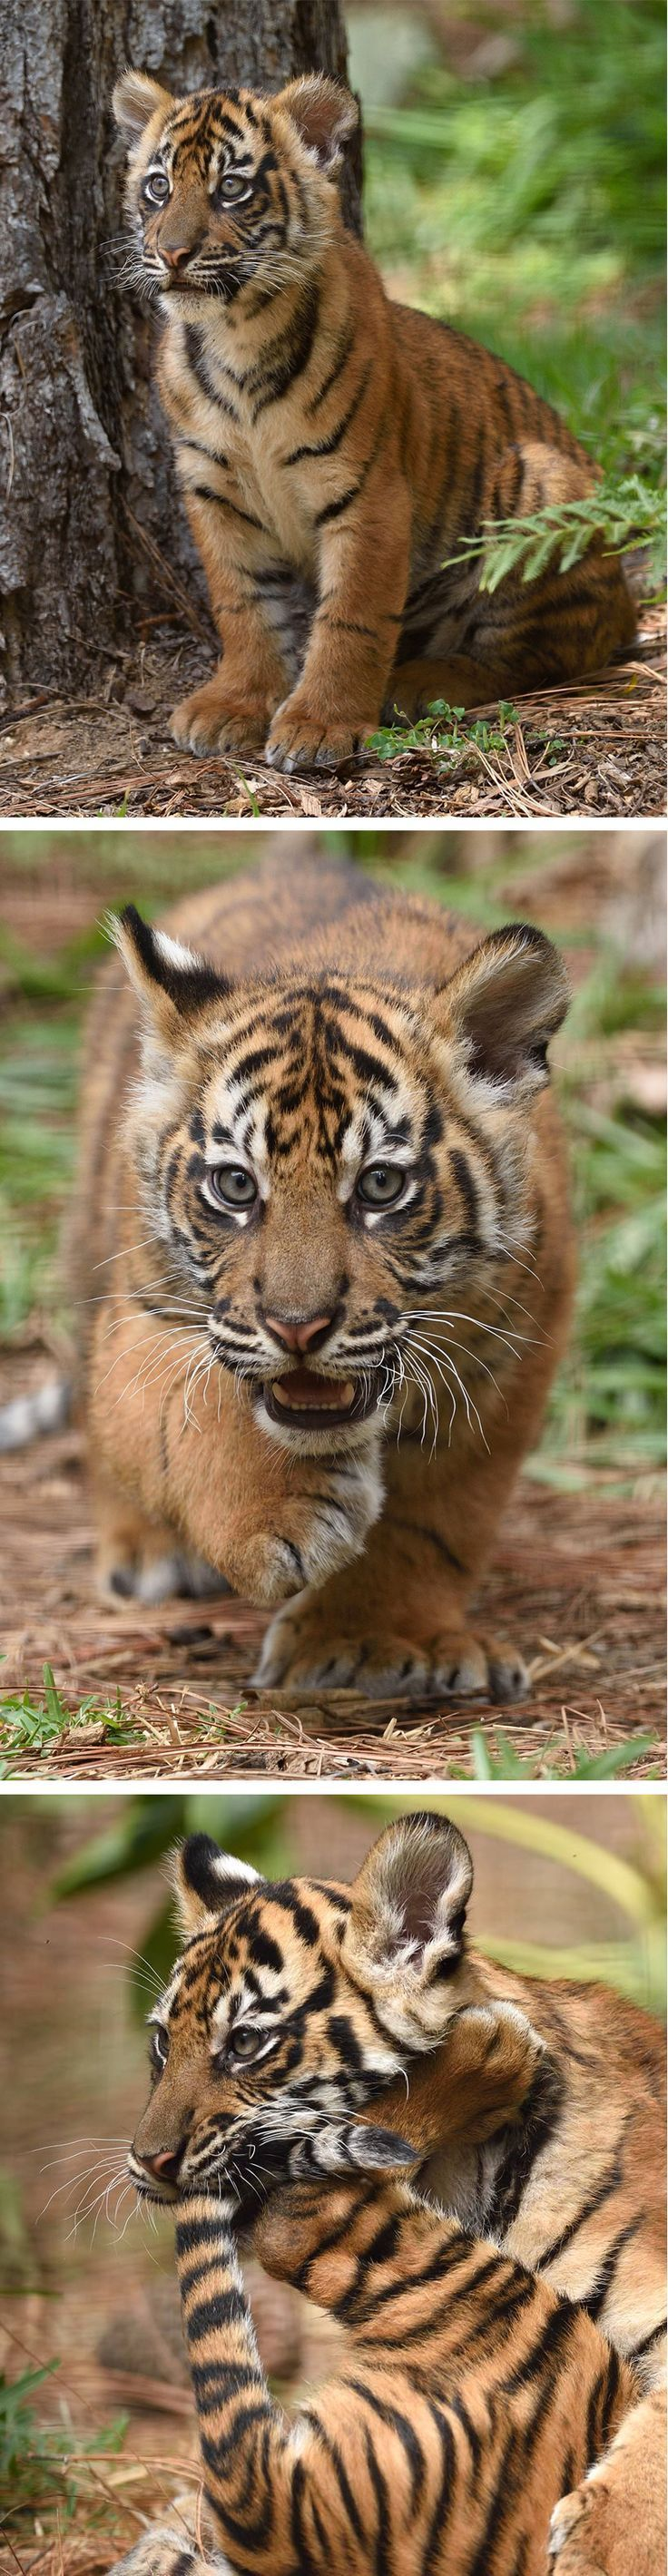 Sumatran tiger cubs Debbie, Cathy, and Nelson are melting hearts at the Safari Park. Photos by Debbie Beals